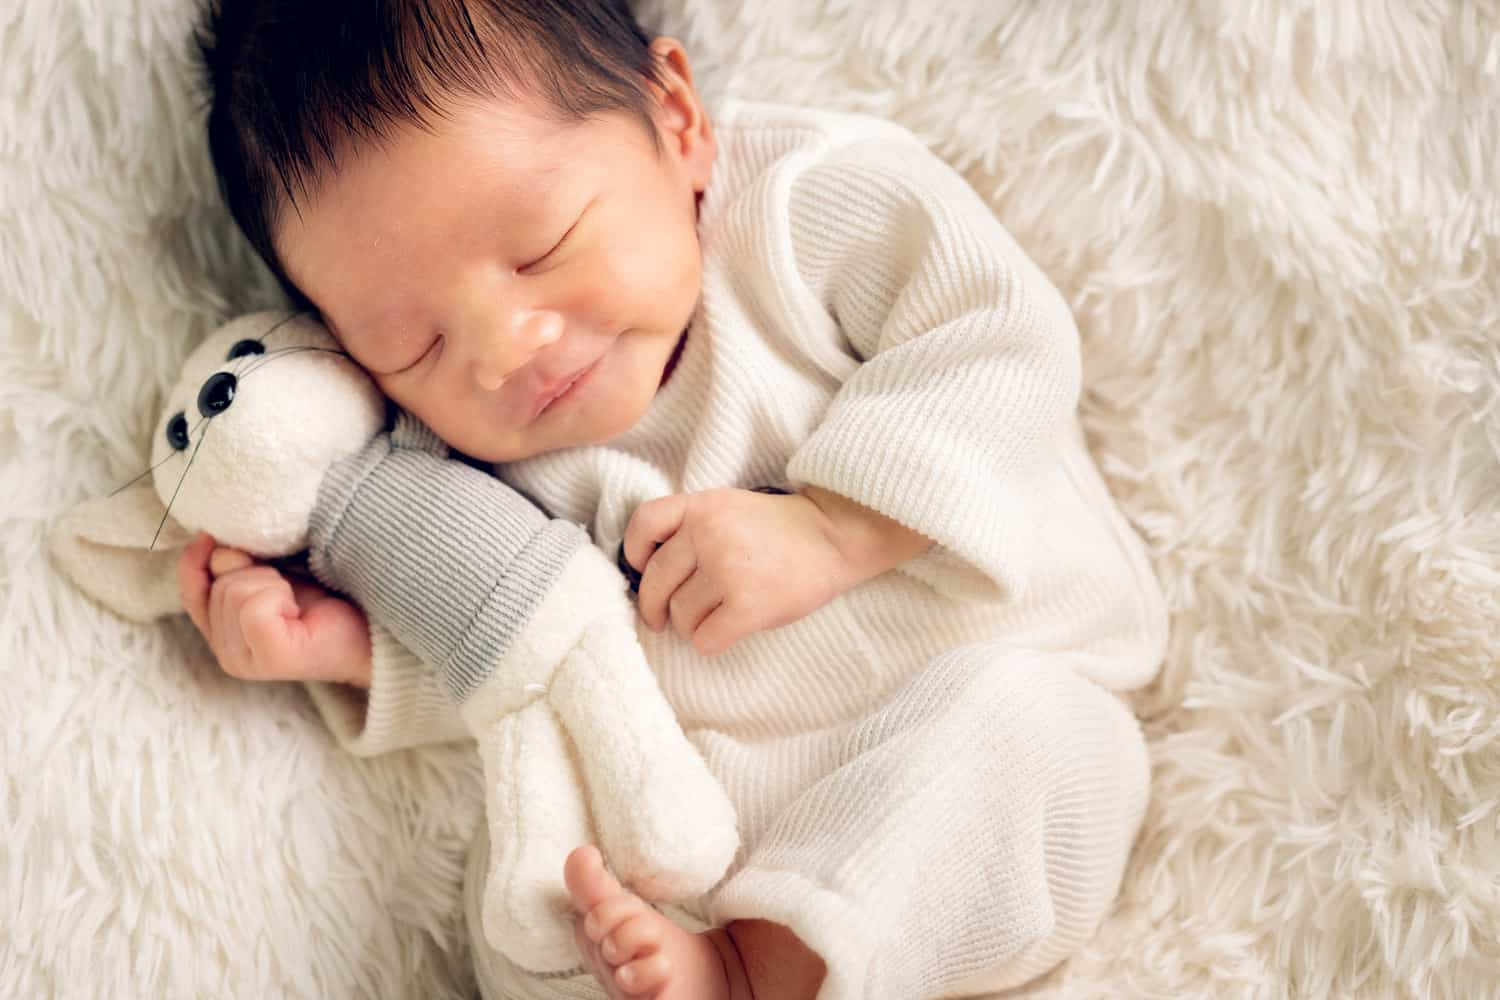 baby photoshoot singapore newborn sleeping with a white mouse toy